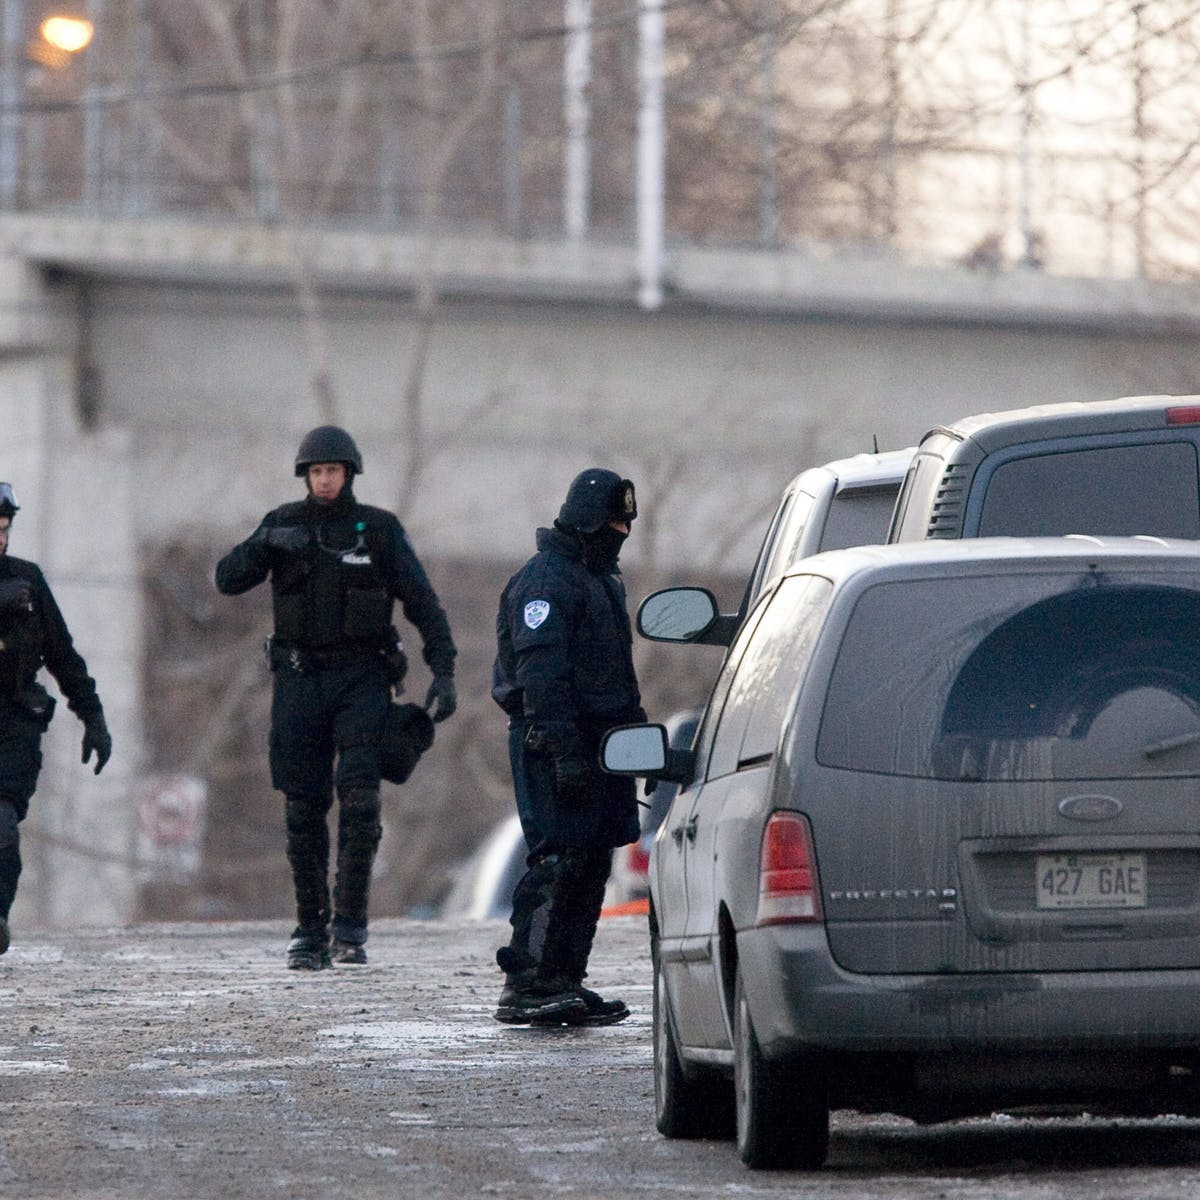 Rise of the SWAT team: Routine police work in Canada is now